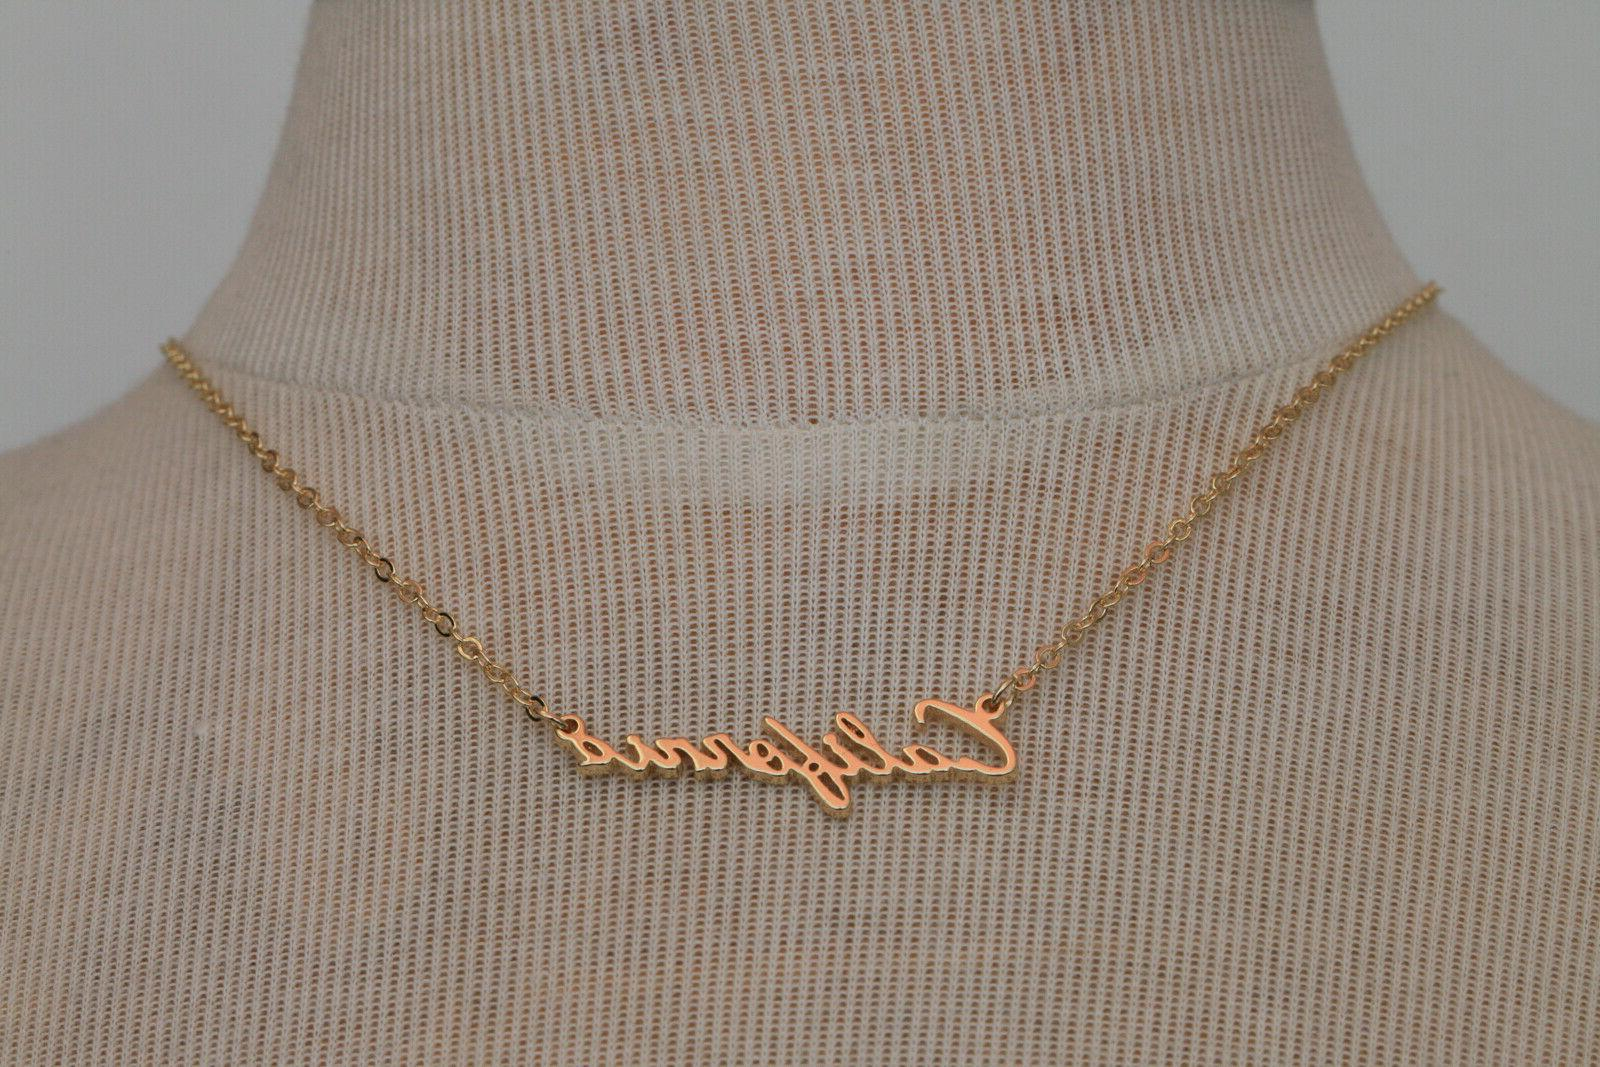 New Pendant Plate Chain Style